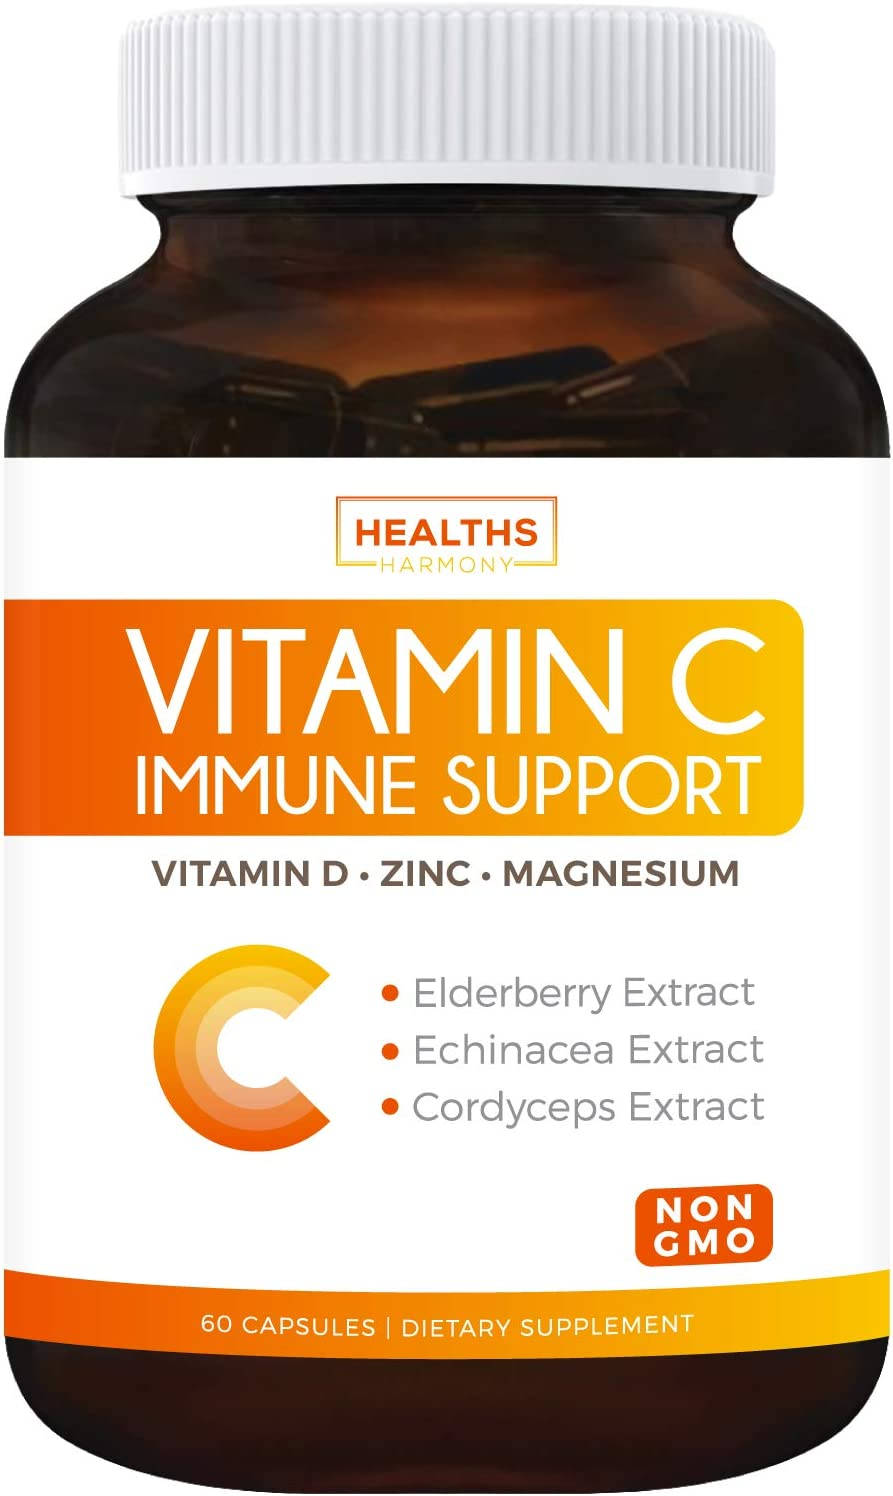 Immune Support - Vitamin C with Zinc, Vitamin D, Elderberry & Echinacea (Non-GMO) Immunity System Booster Supplement - VIT C 500mg - 60 Vegetarian Capsules (No Pills, Tablets, or Gummies)